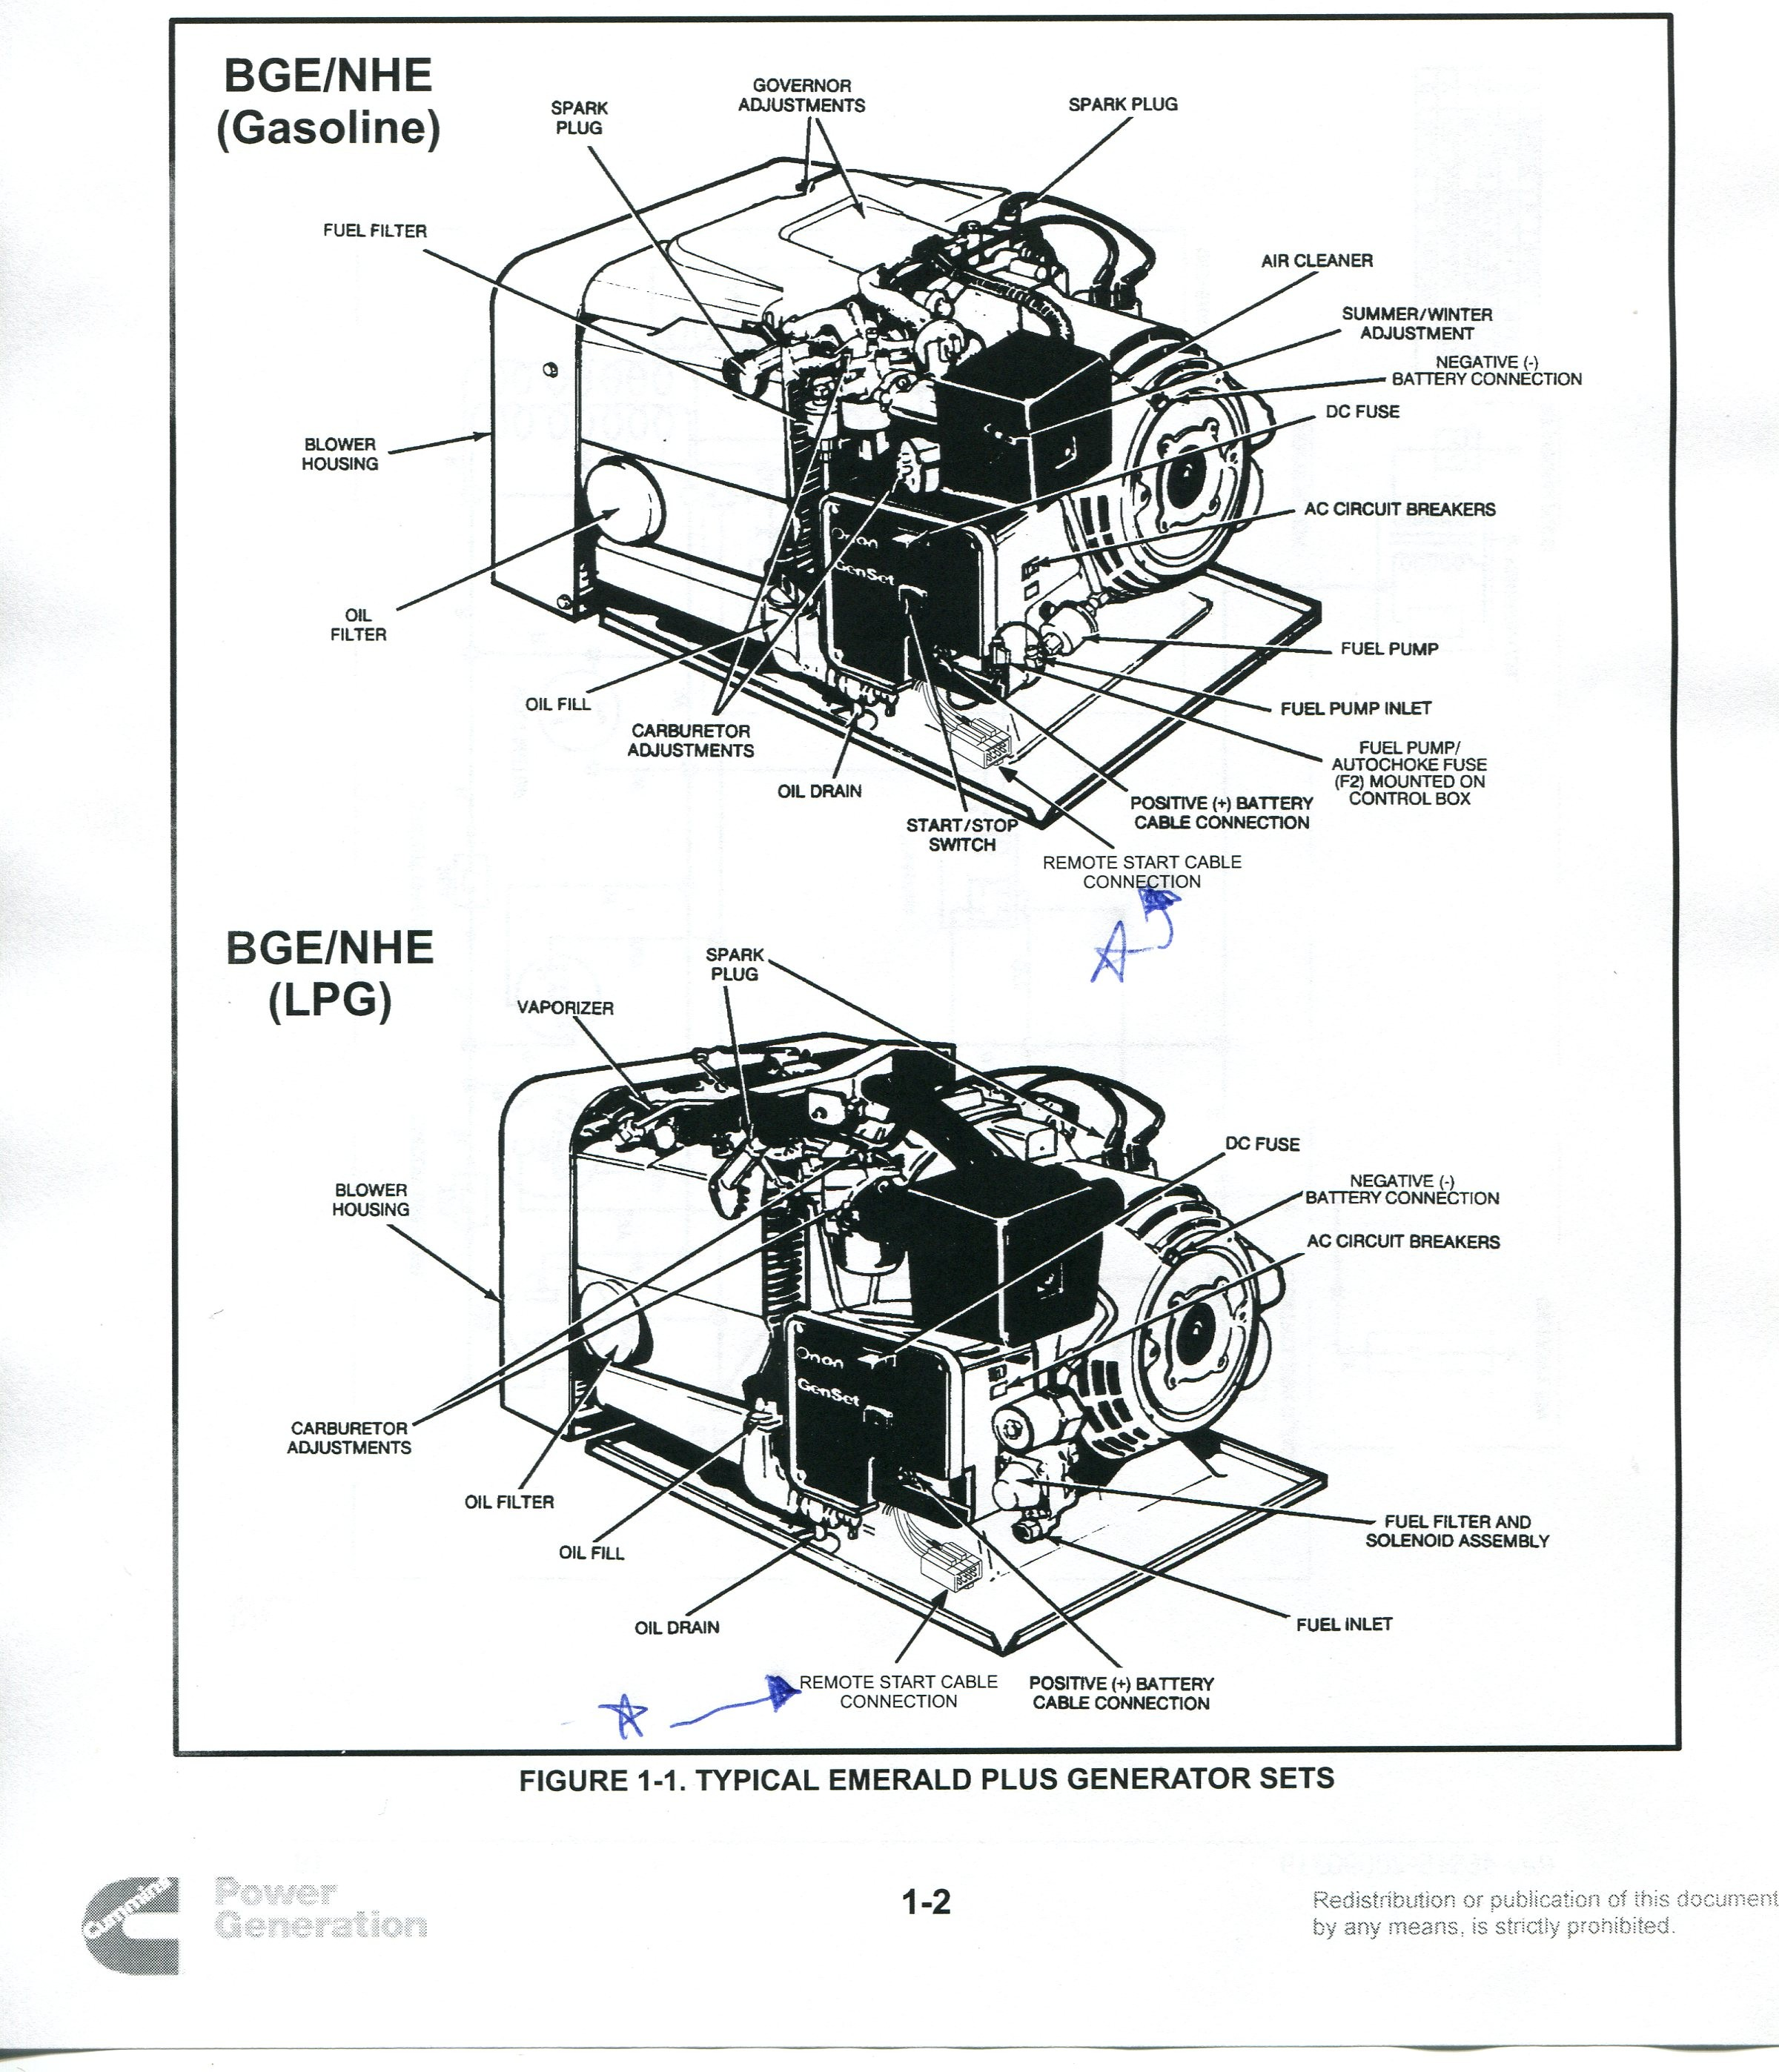 Wiring Diagram Onan 4000 Generator Parts Manual Guide